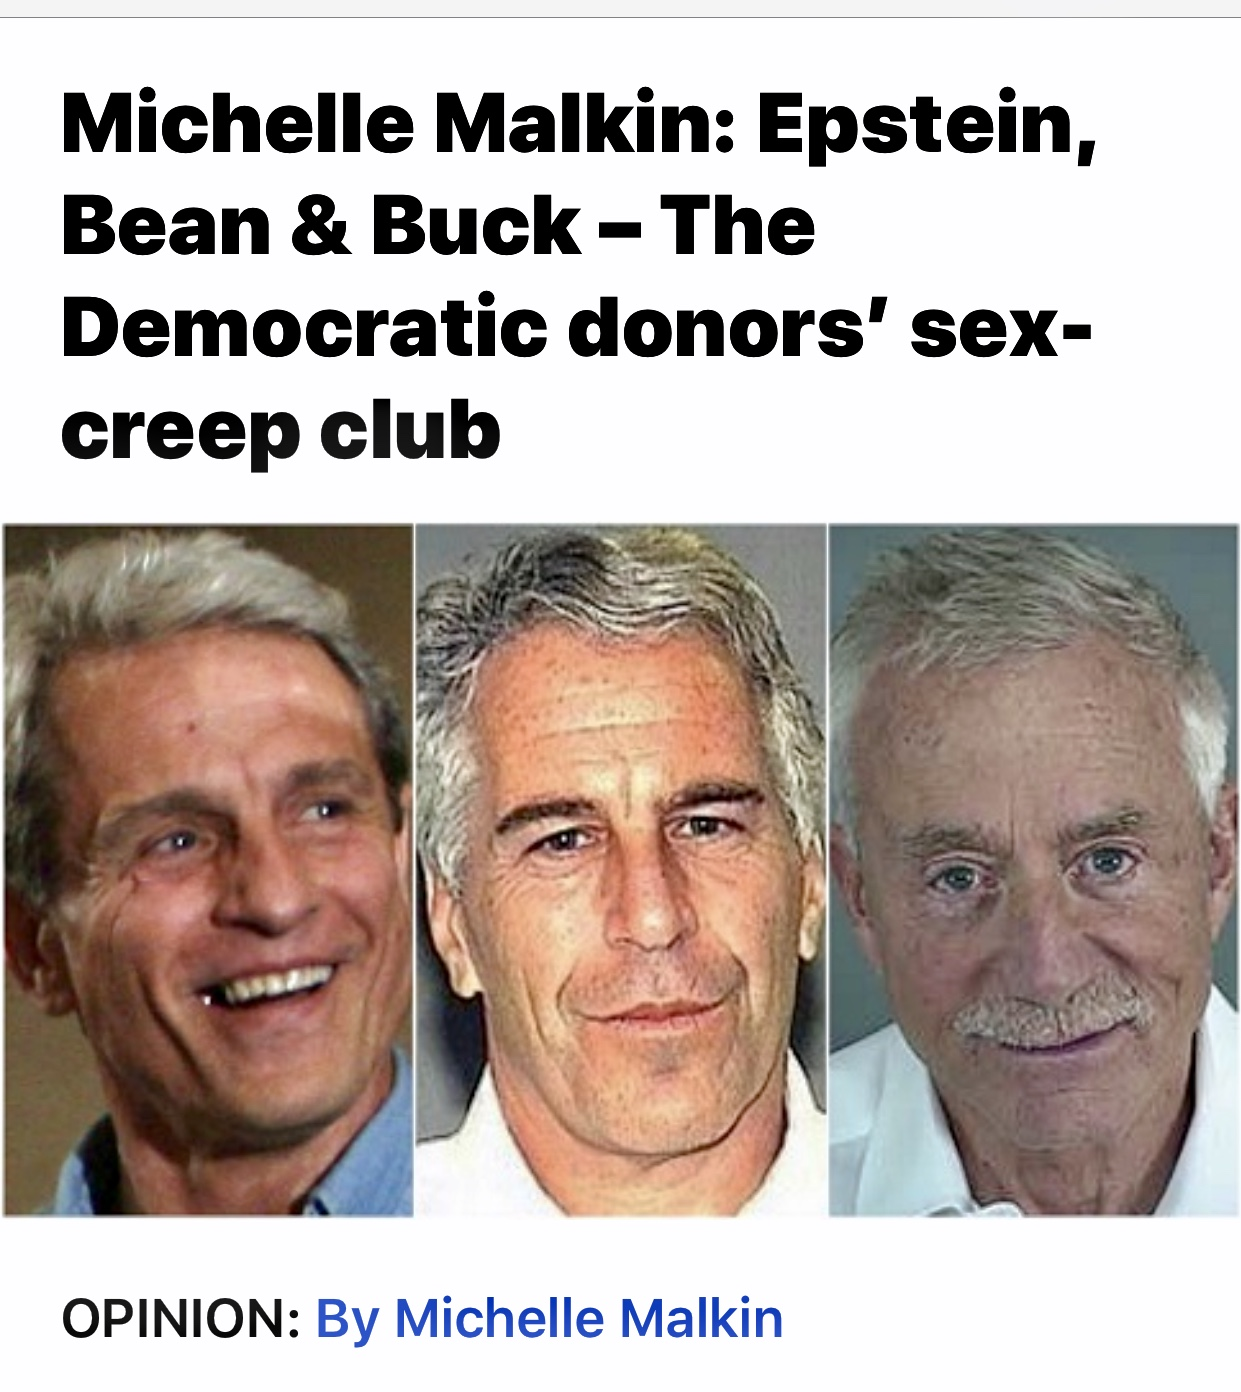 Michelle Malkin: Epstein, Bean & Buck – The Democratic donors' sex-creep club